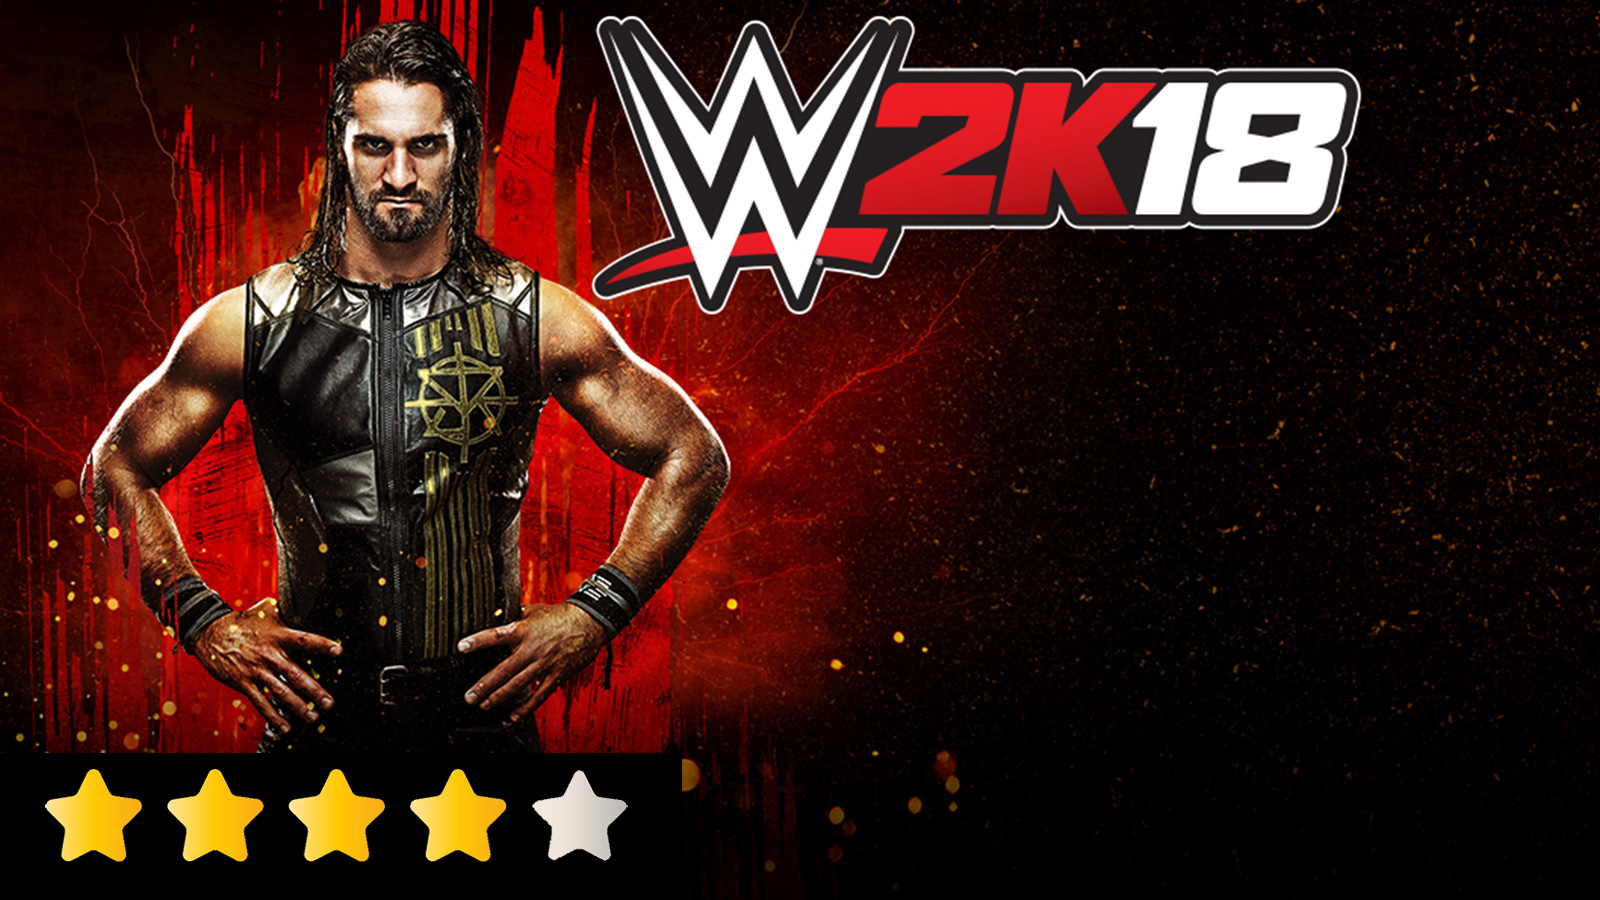 Download WWE 2k18 For IOS